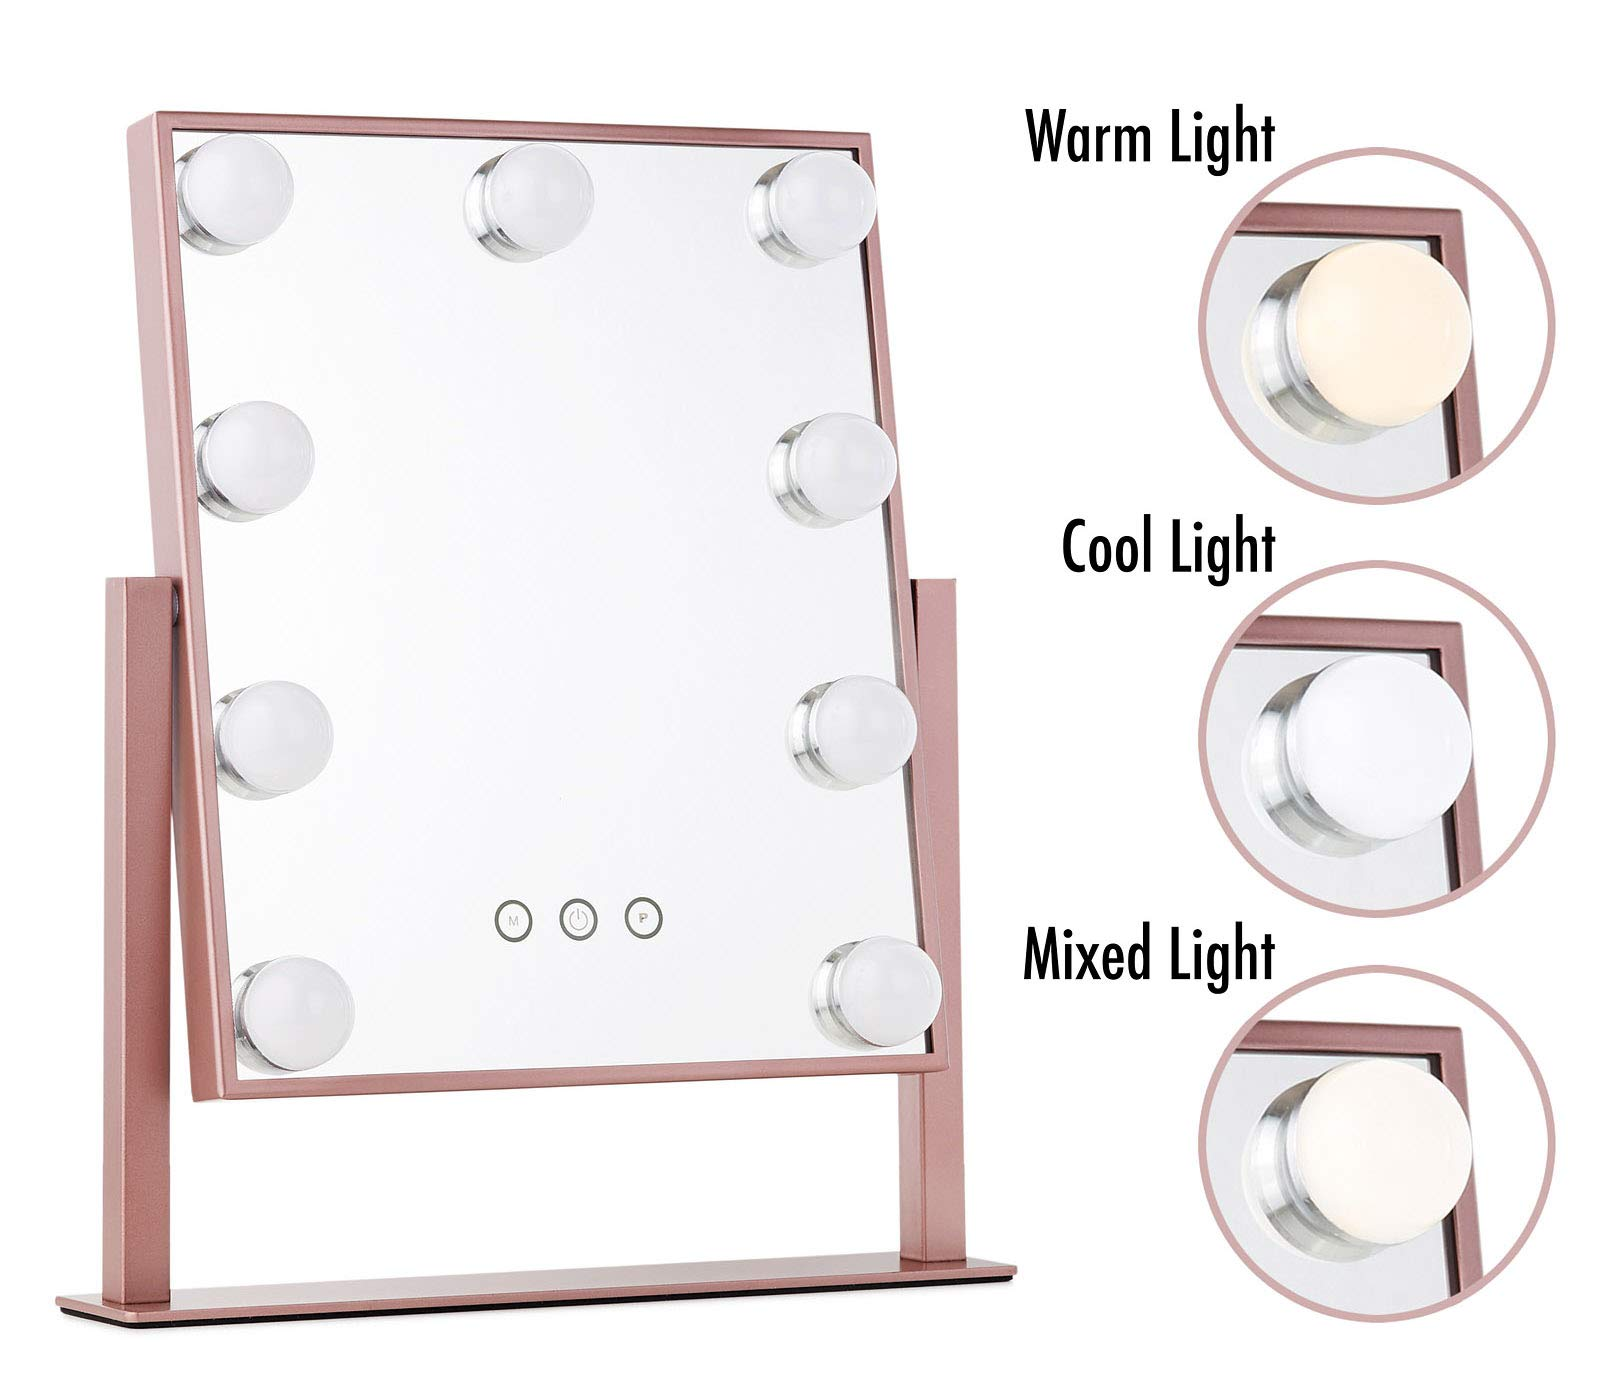 Vanity Makeup Mirror with Hollywood Lights - LED Lighted Make Up Vanity for Cosmetics - Professional Tabletop Beauty Mirror - ROSE GOLD by My Comfort Living